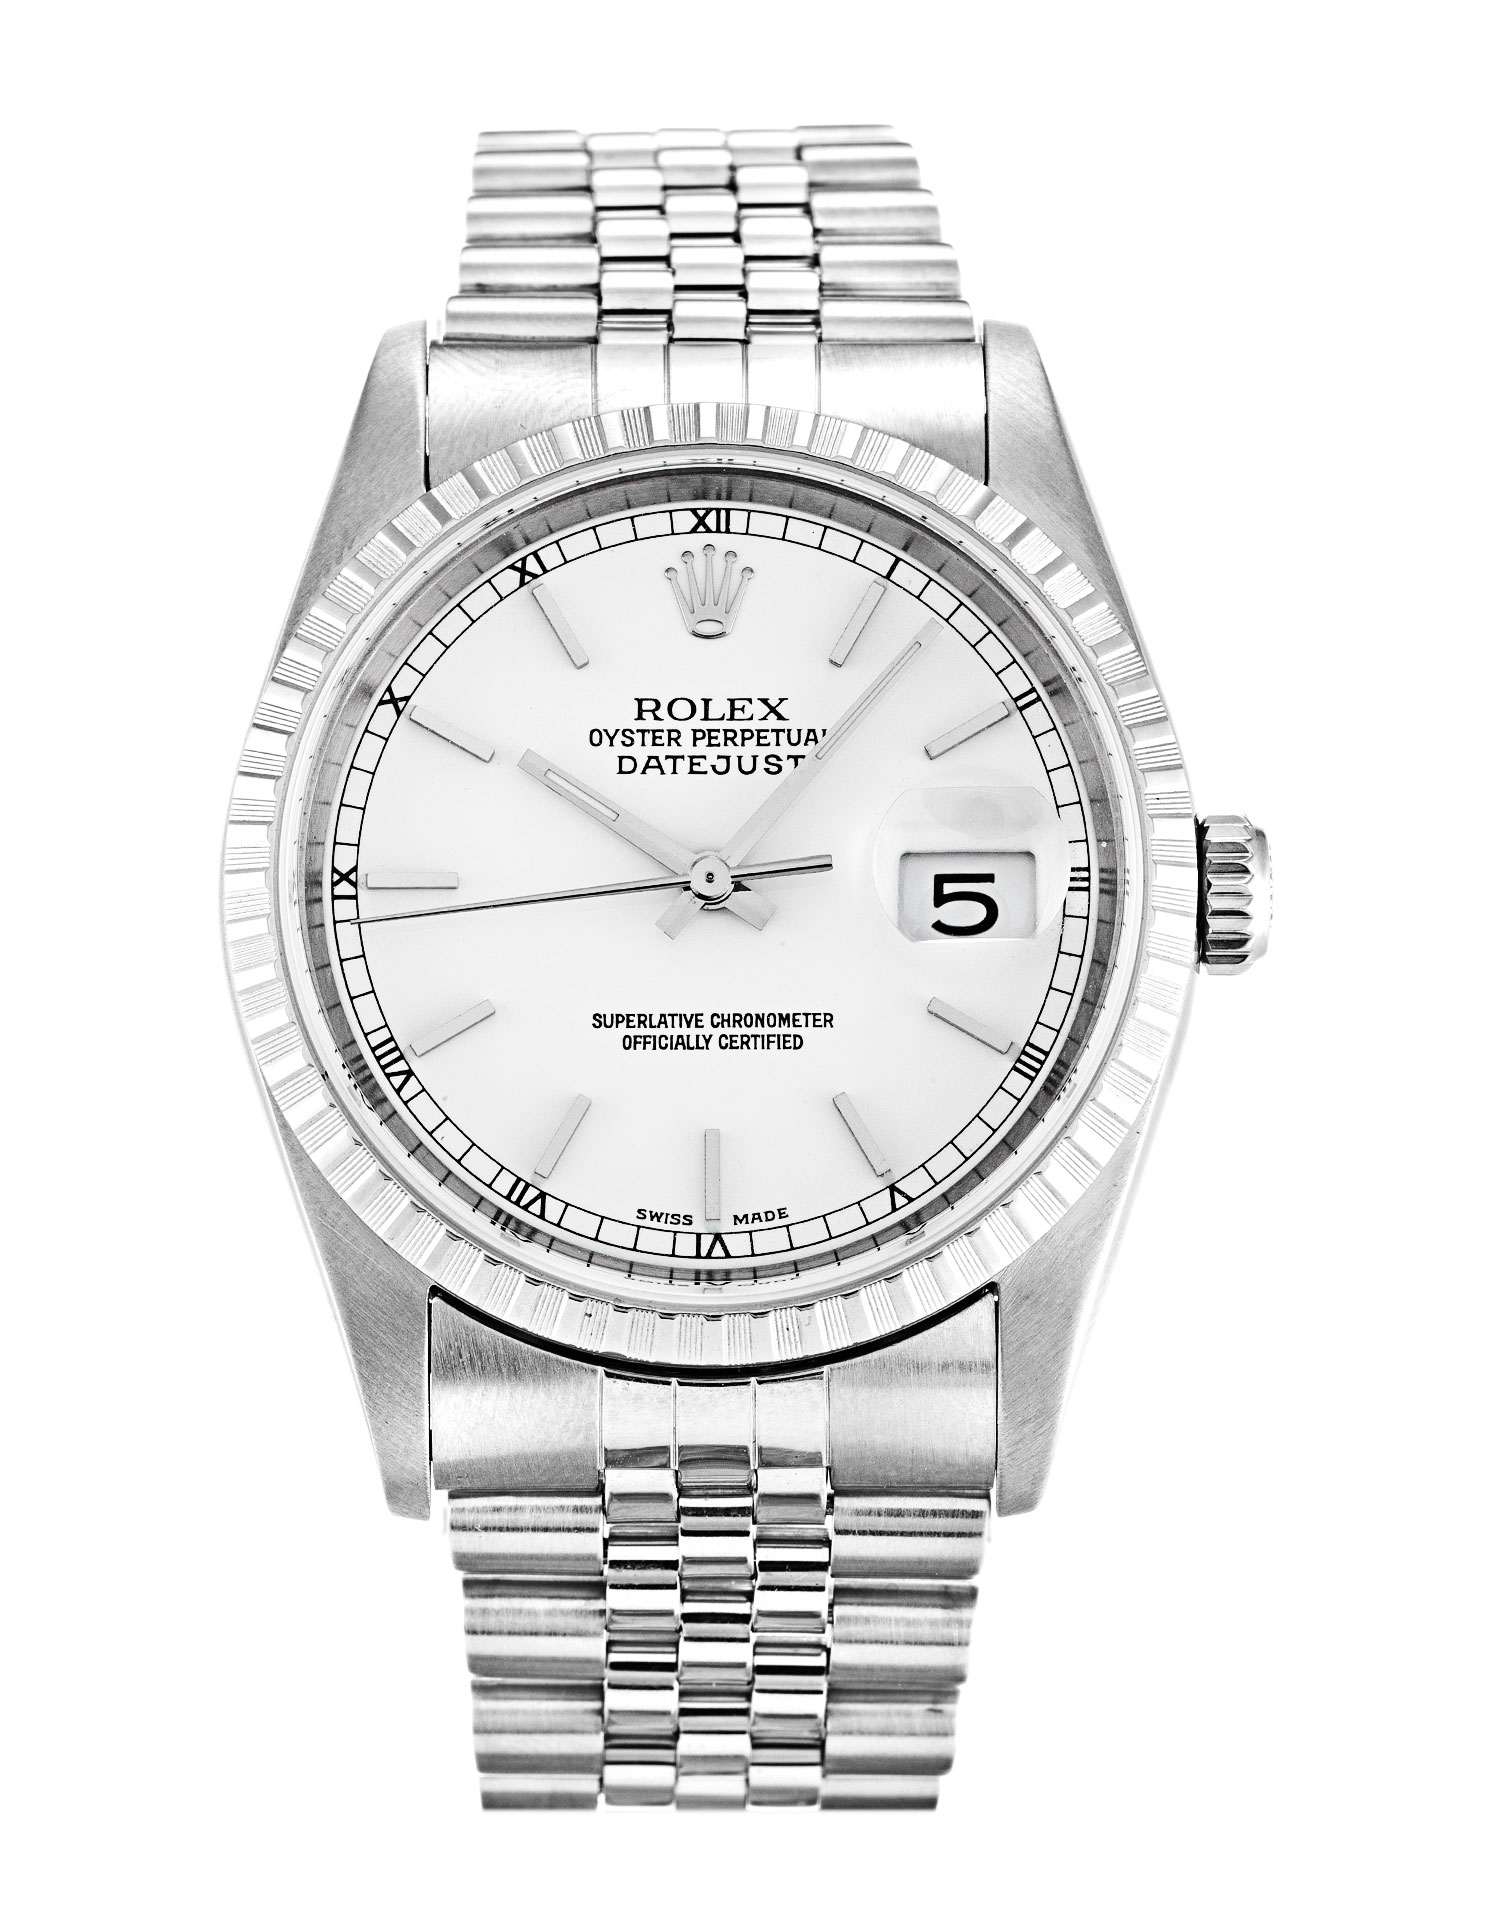 Rolex Datejust 16220 Unisex 36 Mm Steel Case Automatic Movement – iapac.to